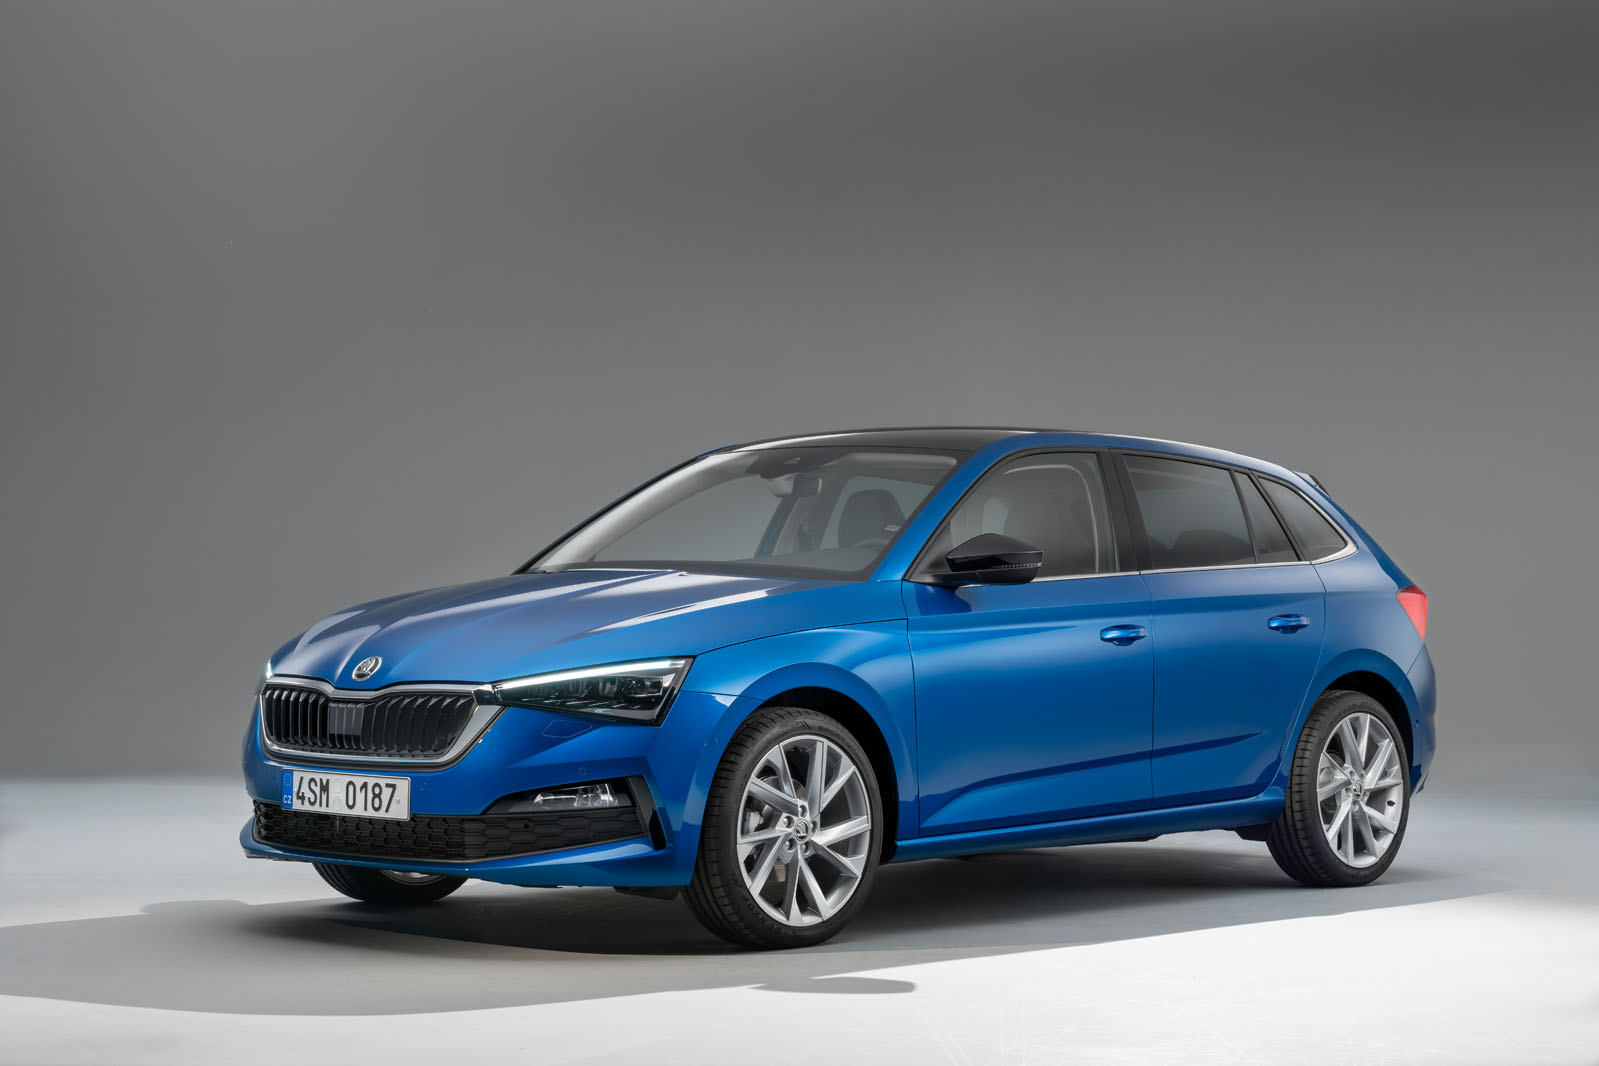 All New Skoda Scala Premium Family Hatchback Unveiled